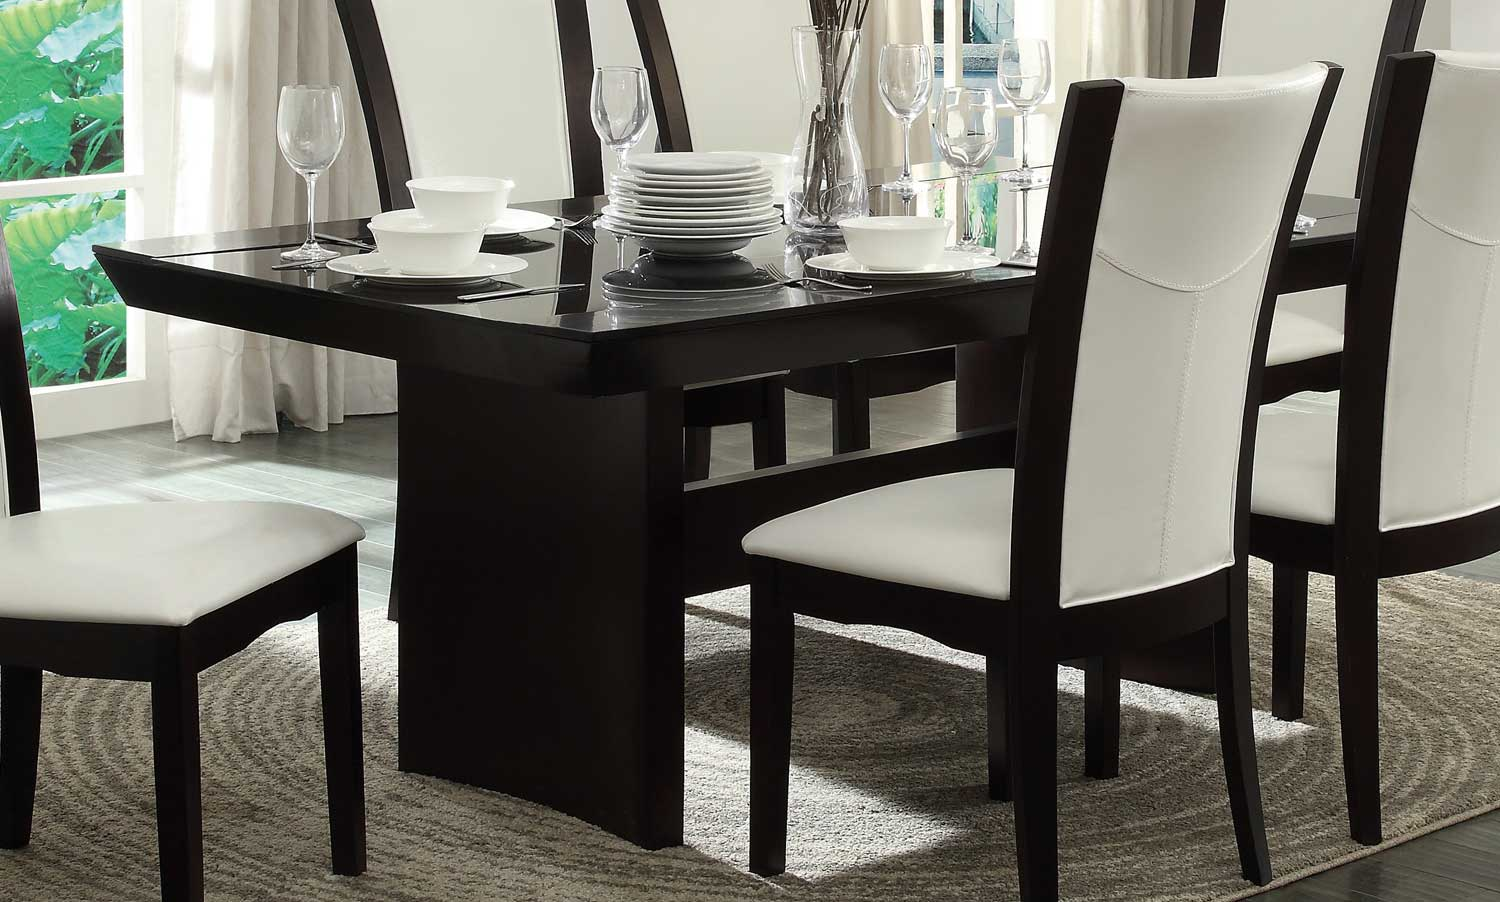 Homelegance Daisy Dining Table with Glass Insert - Espresso